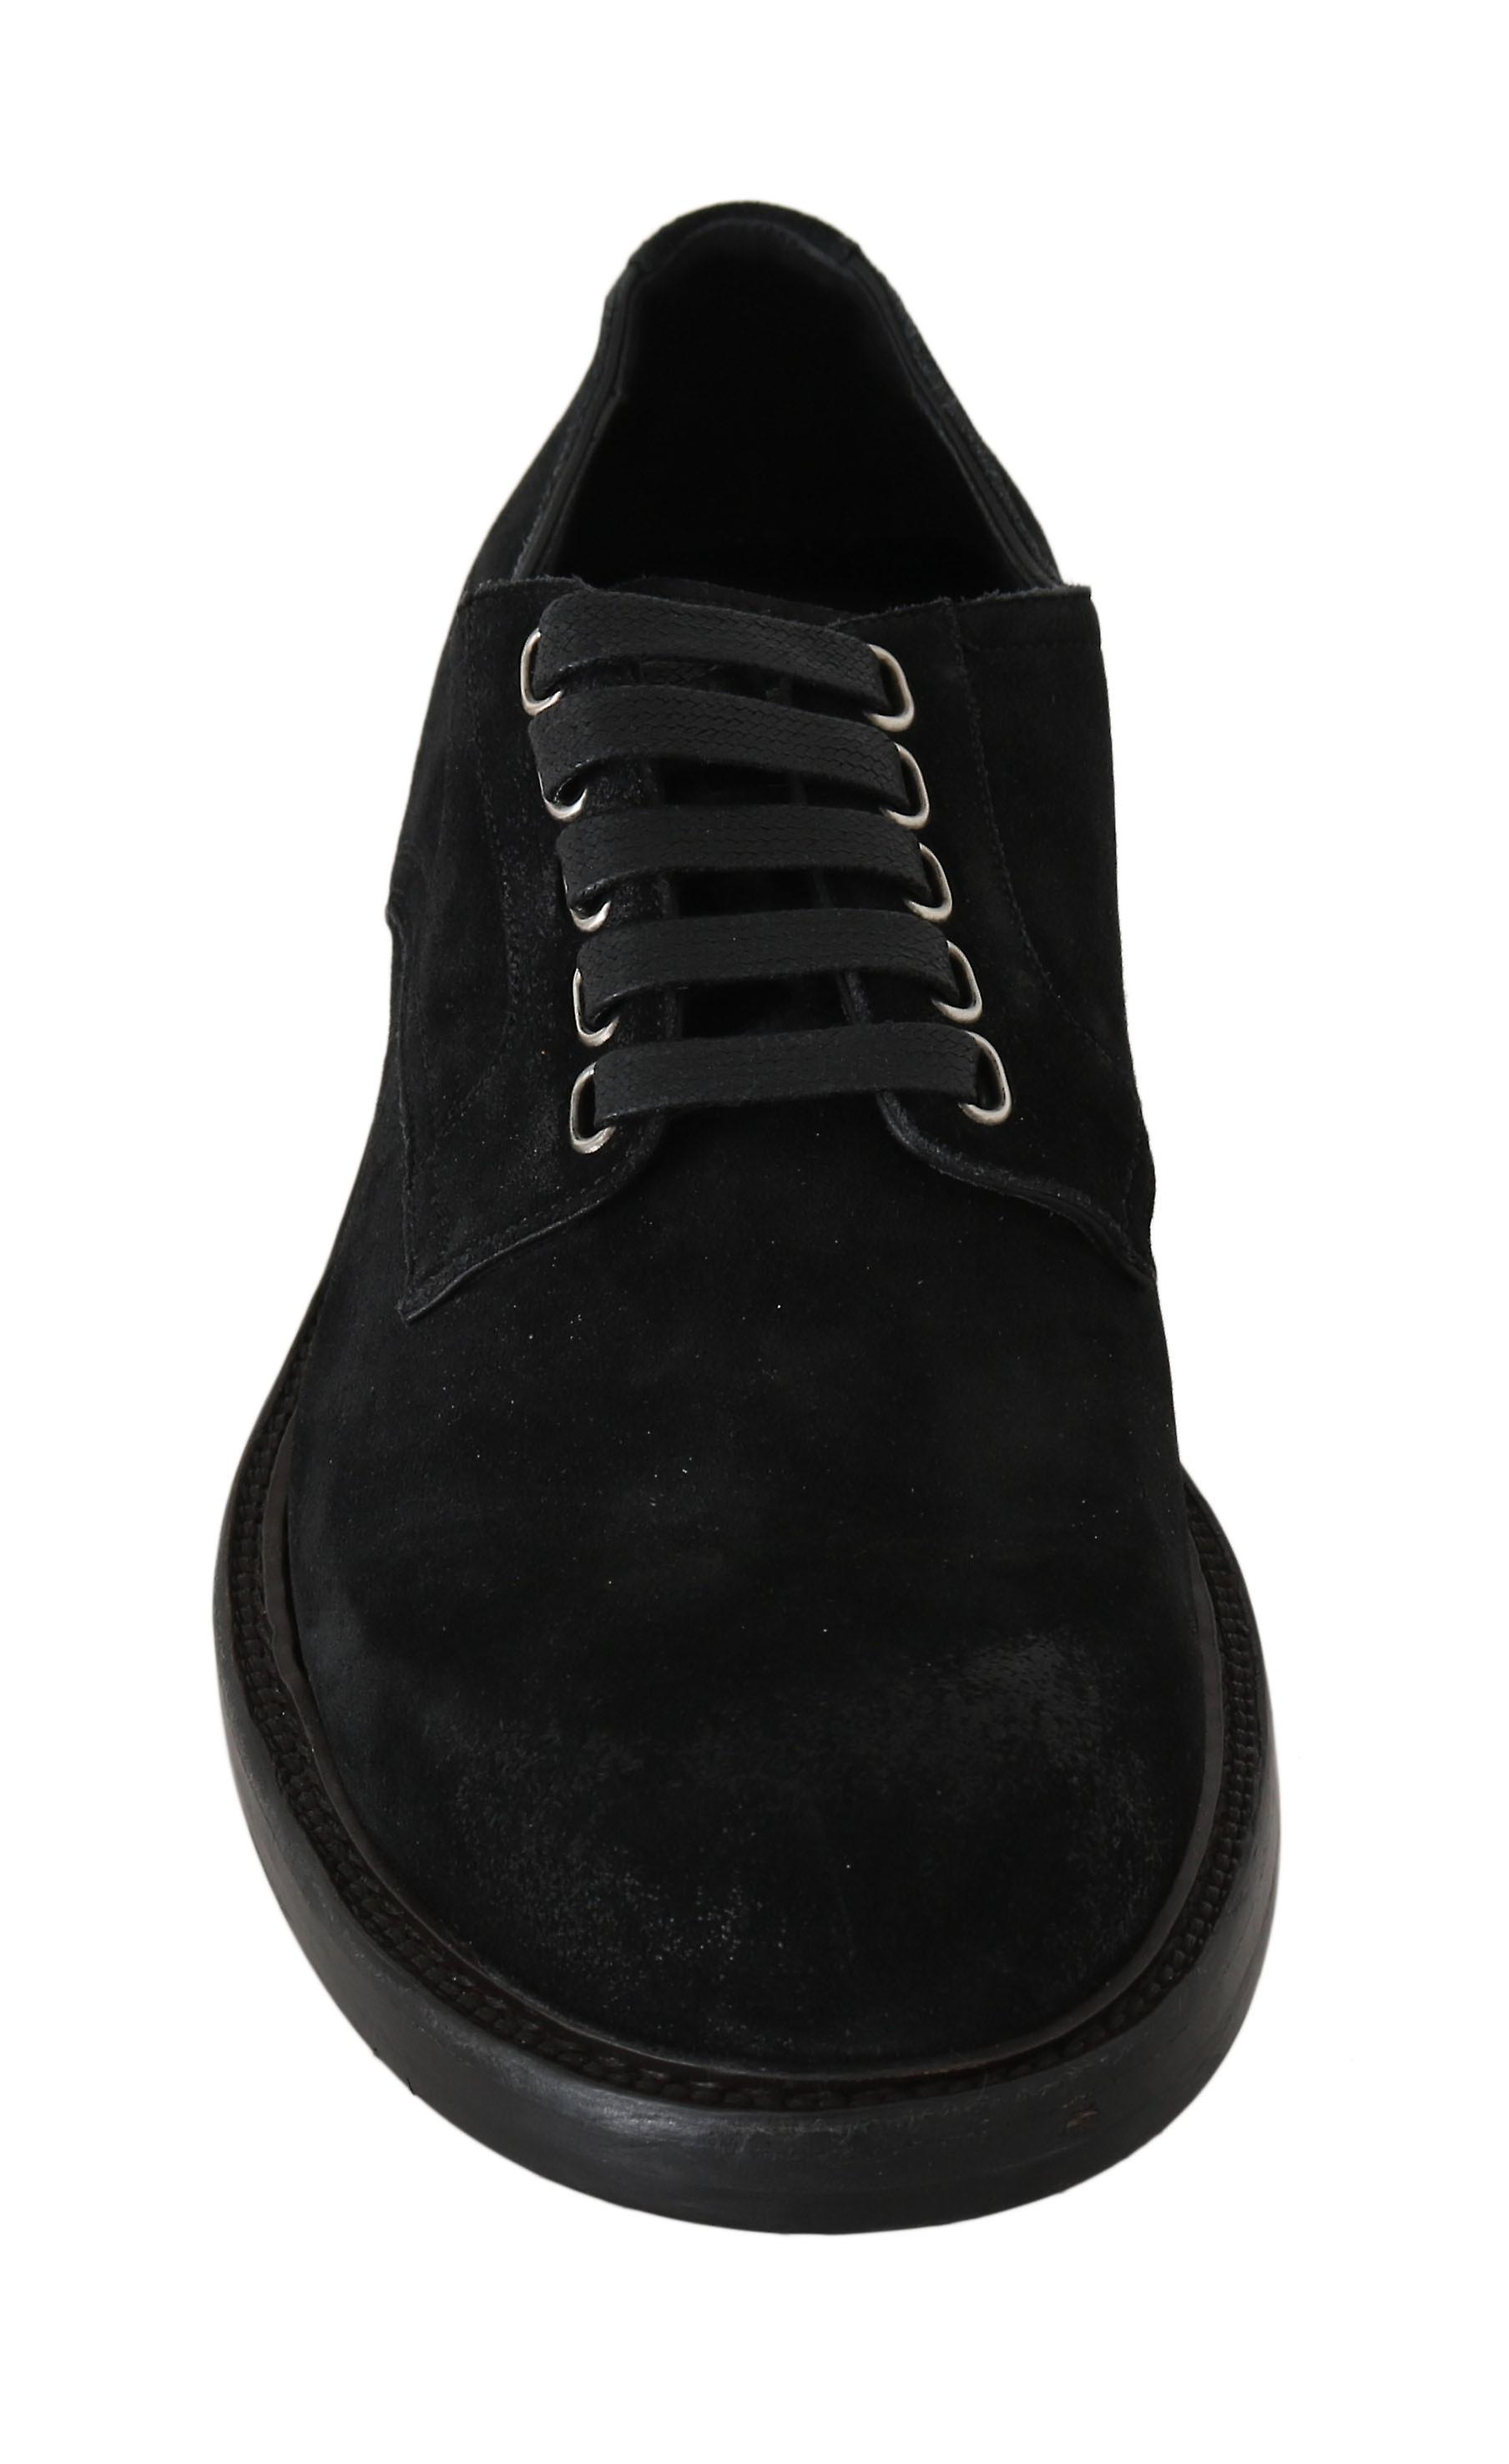 Black Leather Derby Formal Suede Shoes